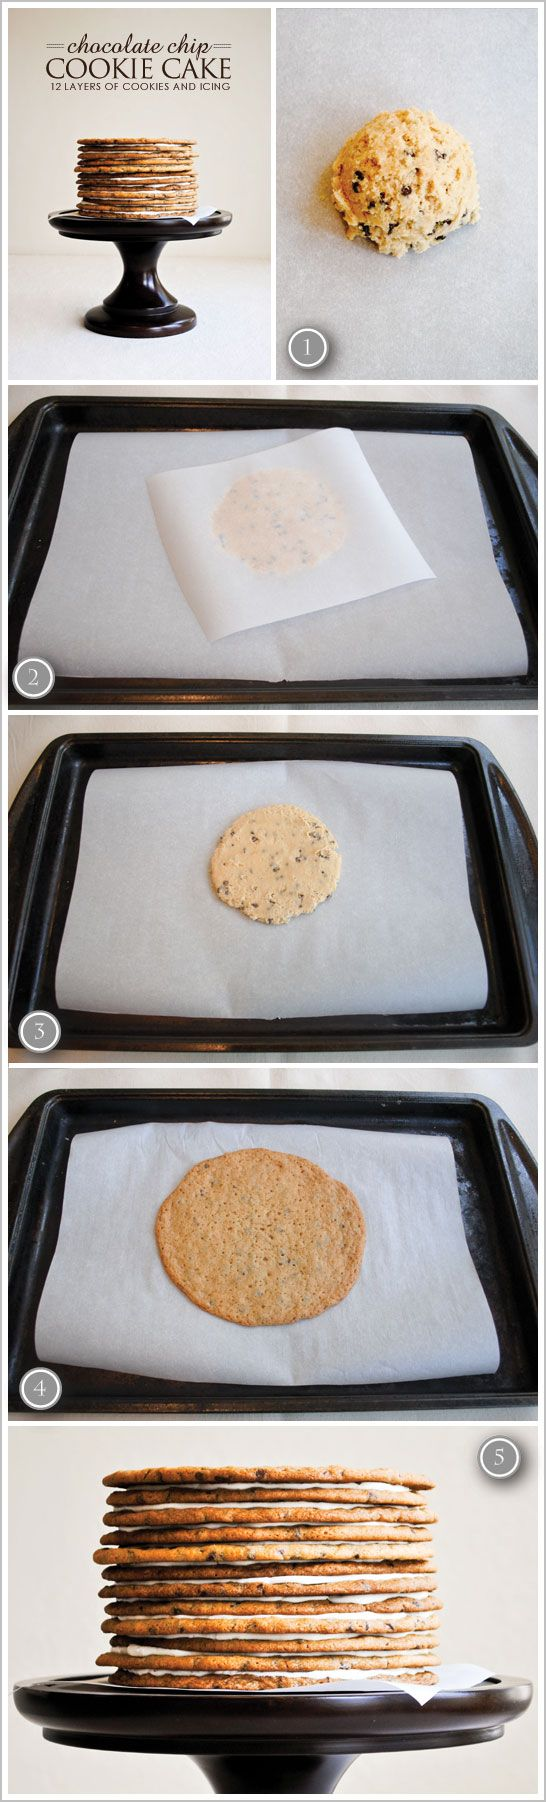 how to make frosting with nestle chocolate chips